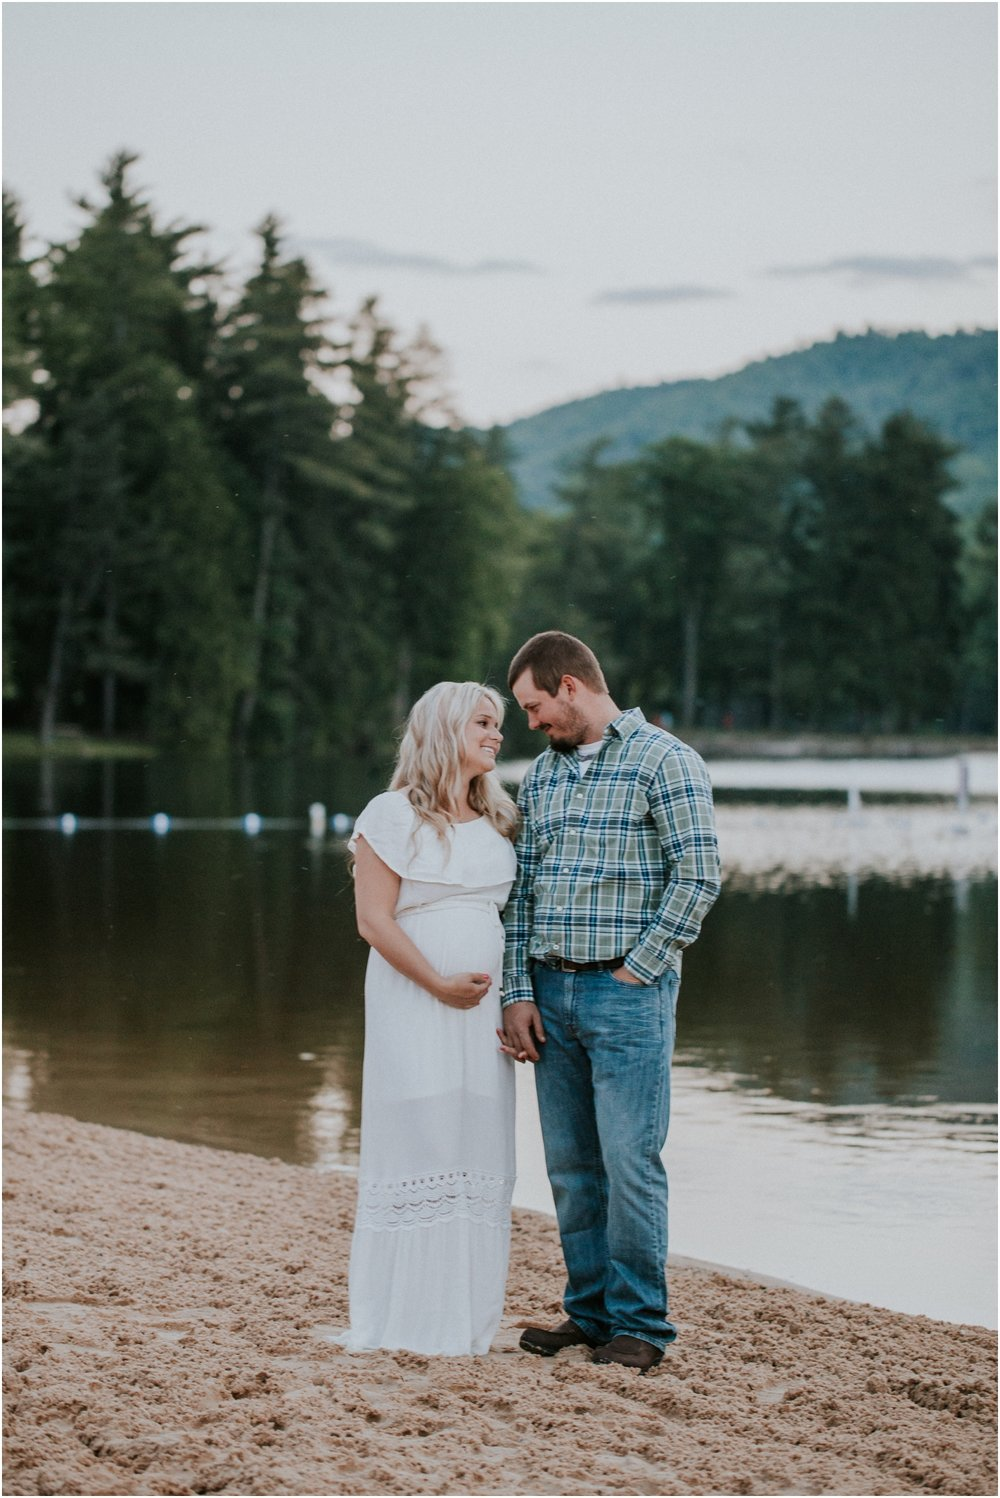 katy-sergent-photography-johnson-city-tennessee-northest-tn-elopement-intimate-wedding-photographer-outdoors-adventurous-couples-adventure-lovers_0034.jpg